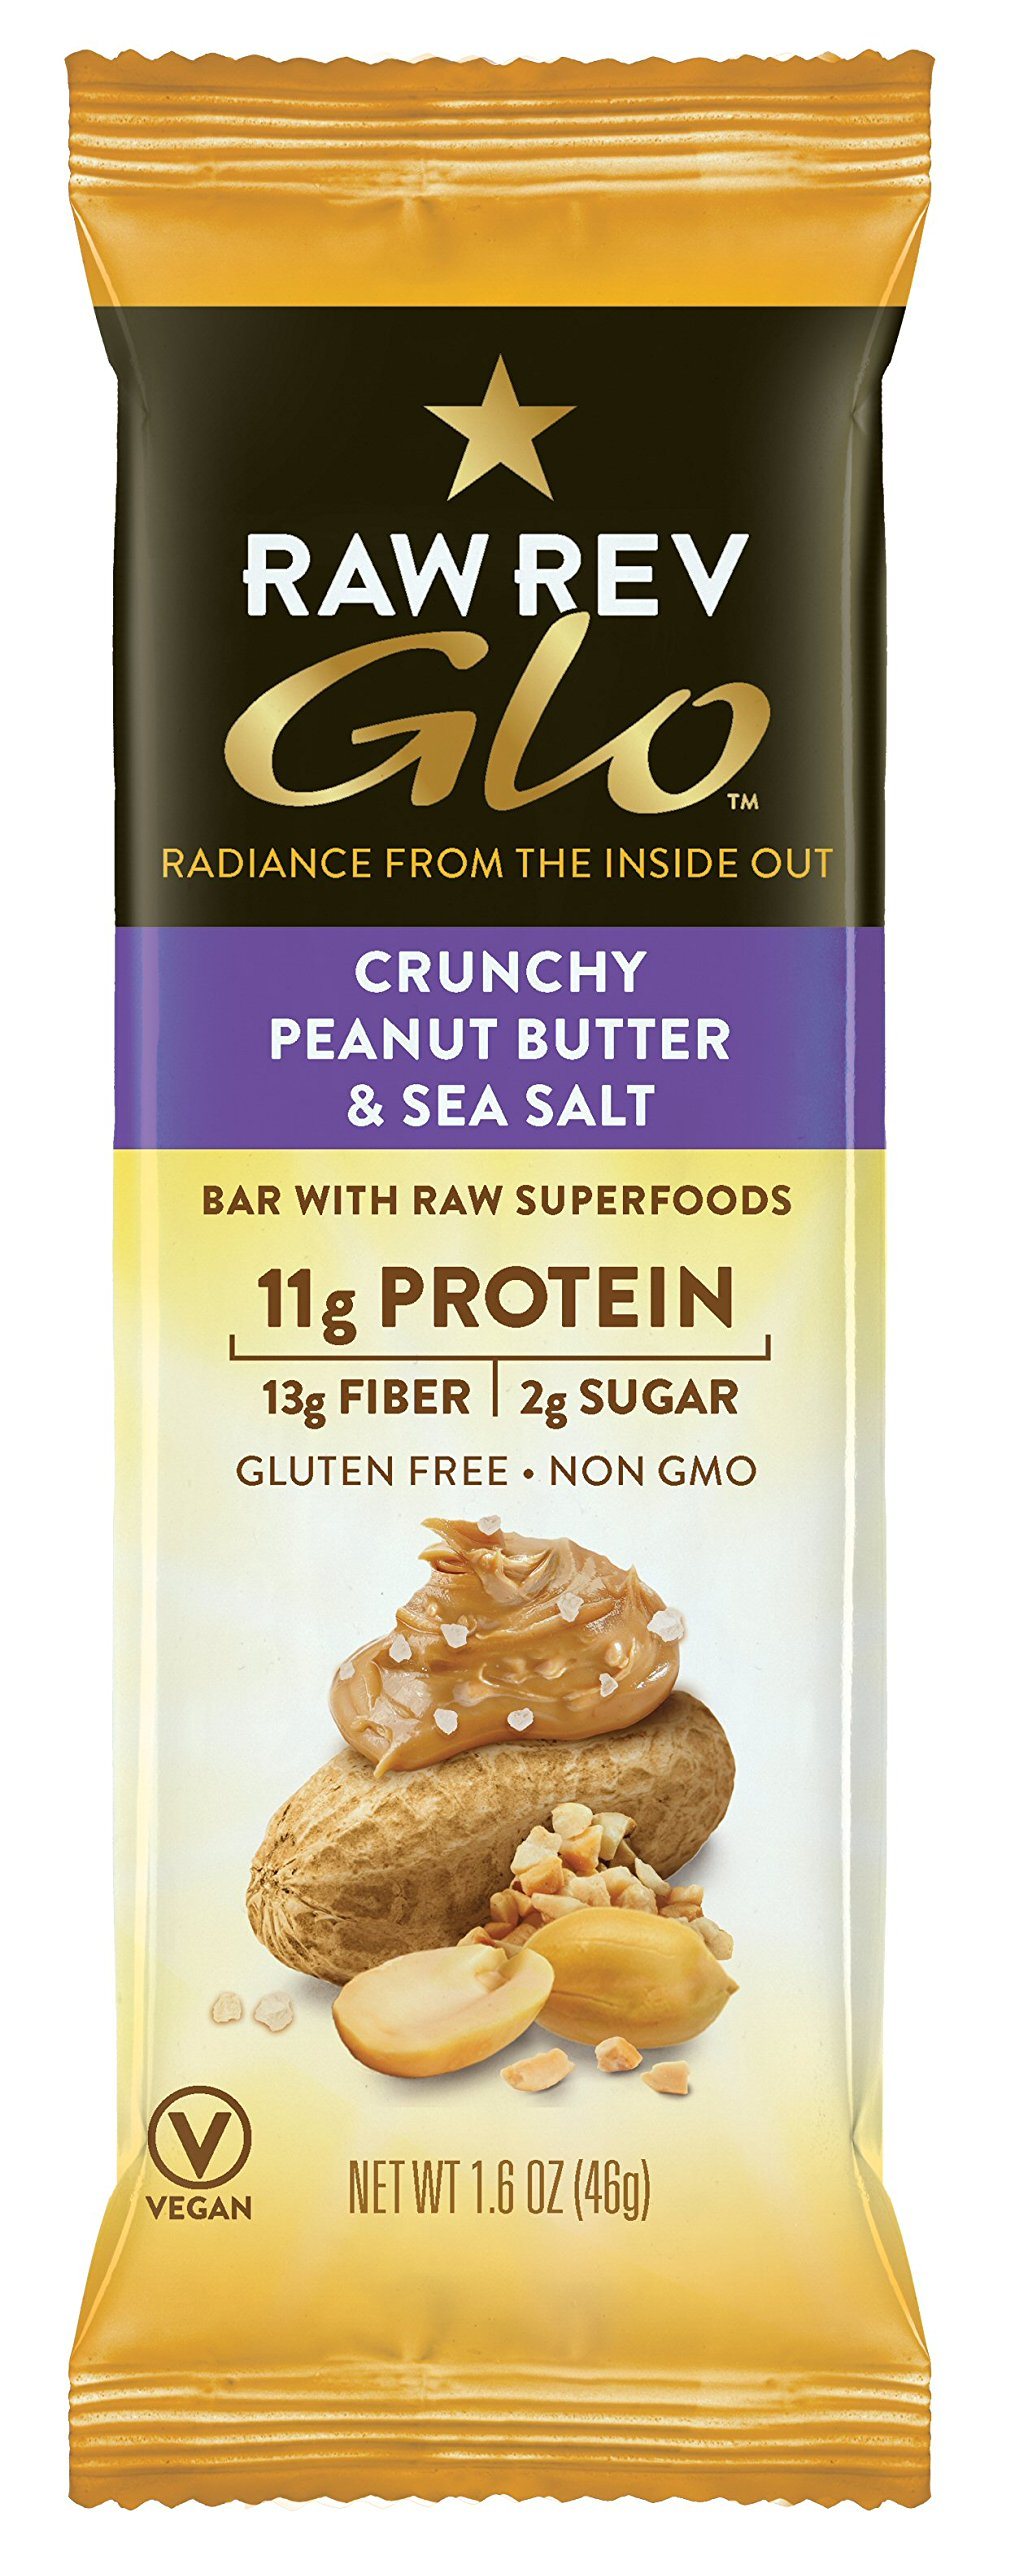 Raw Rev Glo Vegan, Gluten-Free Protein Bars - Crunchy Peanut Butter & Sea Salt 1.6 ounce (Pack of 12)